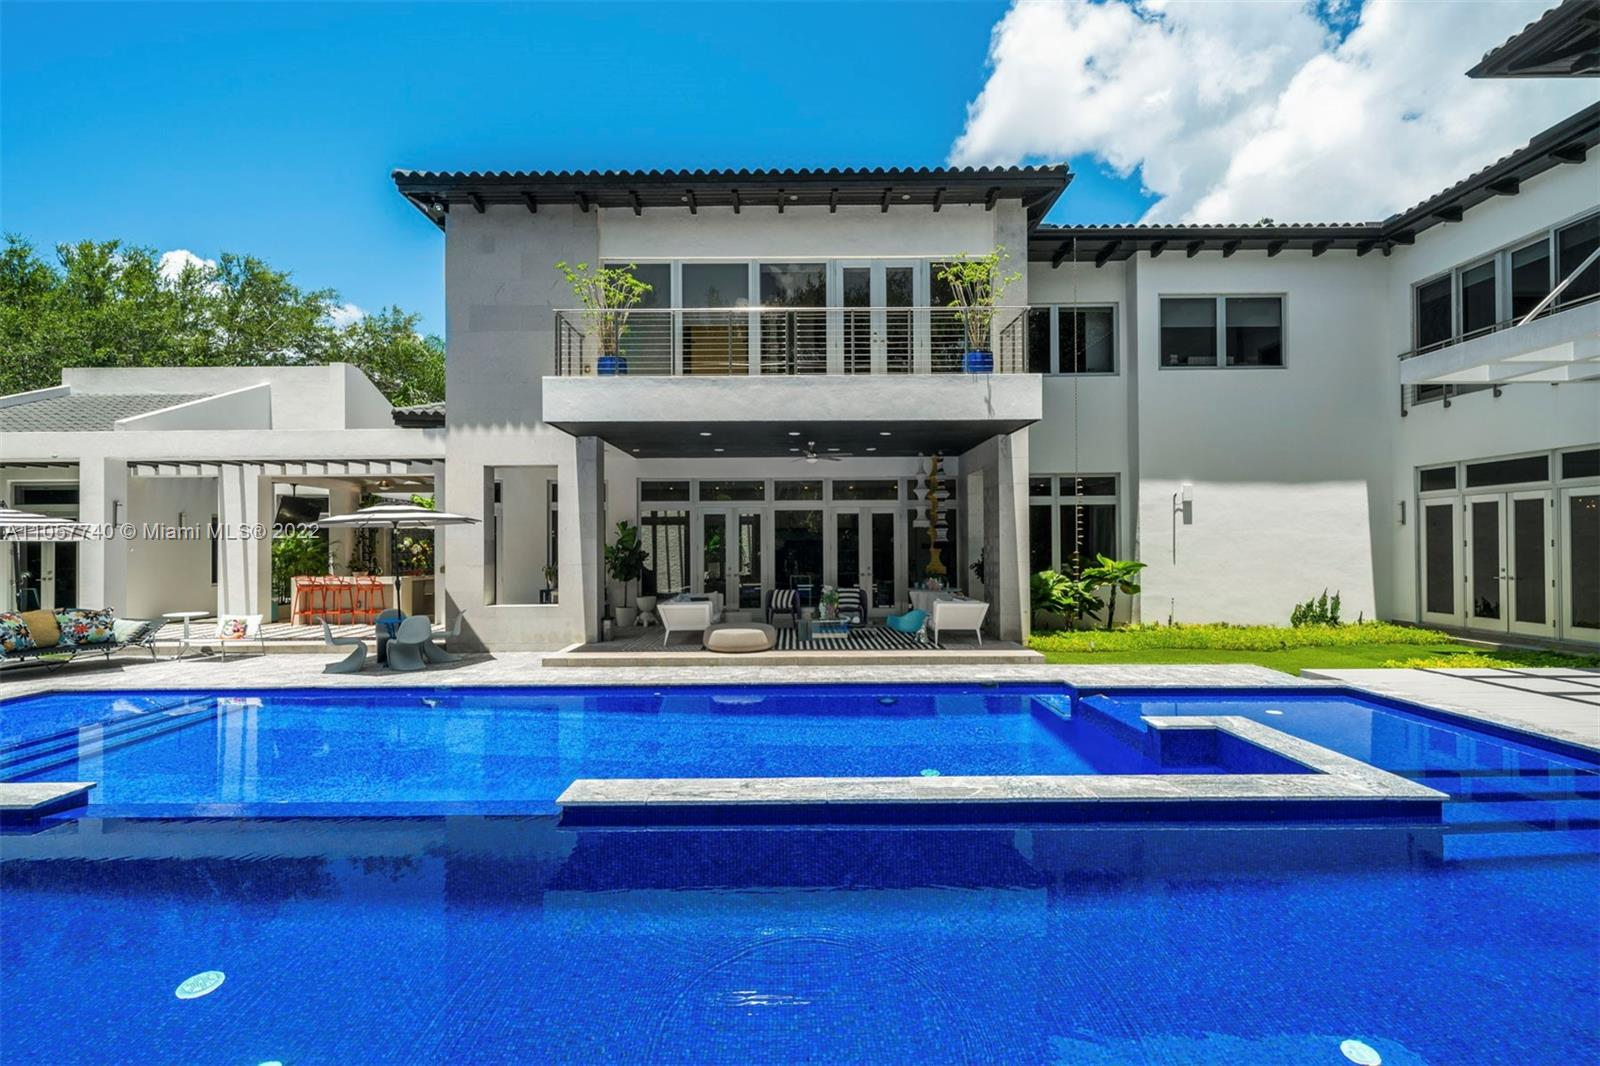 Glamorous contemporary living in Ponce Davis. This 10,267 Sq. Ft. home, with 7 bedrooms, 7 full and 2 half bathrooms, features open balconies throughout the second floor, high ceilings, tall windows, and French doors allowing seamless integration of the indoor living spaces and outdoor terraces. State-of-the-art floor plan includes an open family room and beautifully appointed chef's kitchen with Miele and Gaggenau appliances. The main suite, with seating and an office area overlooking the gardens, has a sumptuous spa-like bathroom. Superbly designed and manicured grounds include a sparkling pool with wave pump, covered terraces ideal for entertaining, full summer kitchen, and separate fitness room. This magnificent home balances style and comfort, perfect for today's lifestyle.